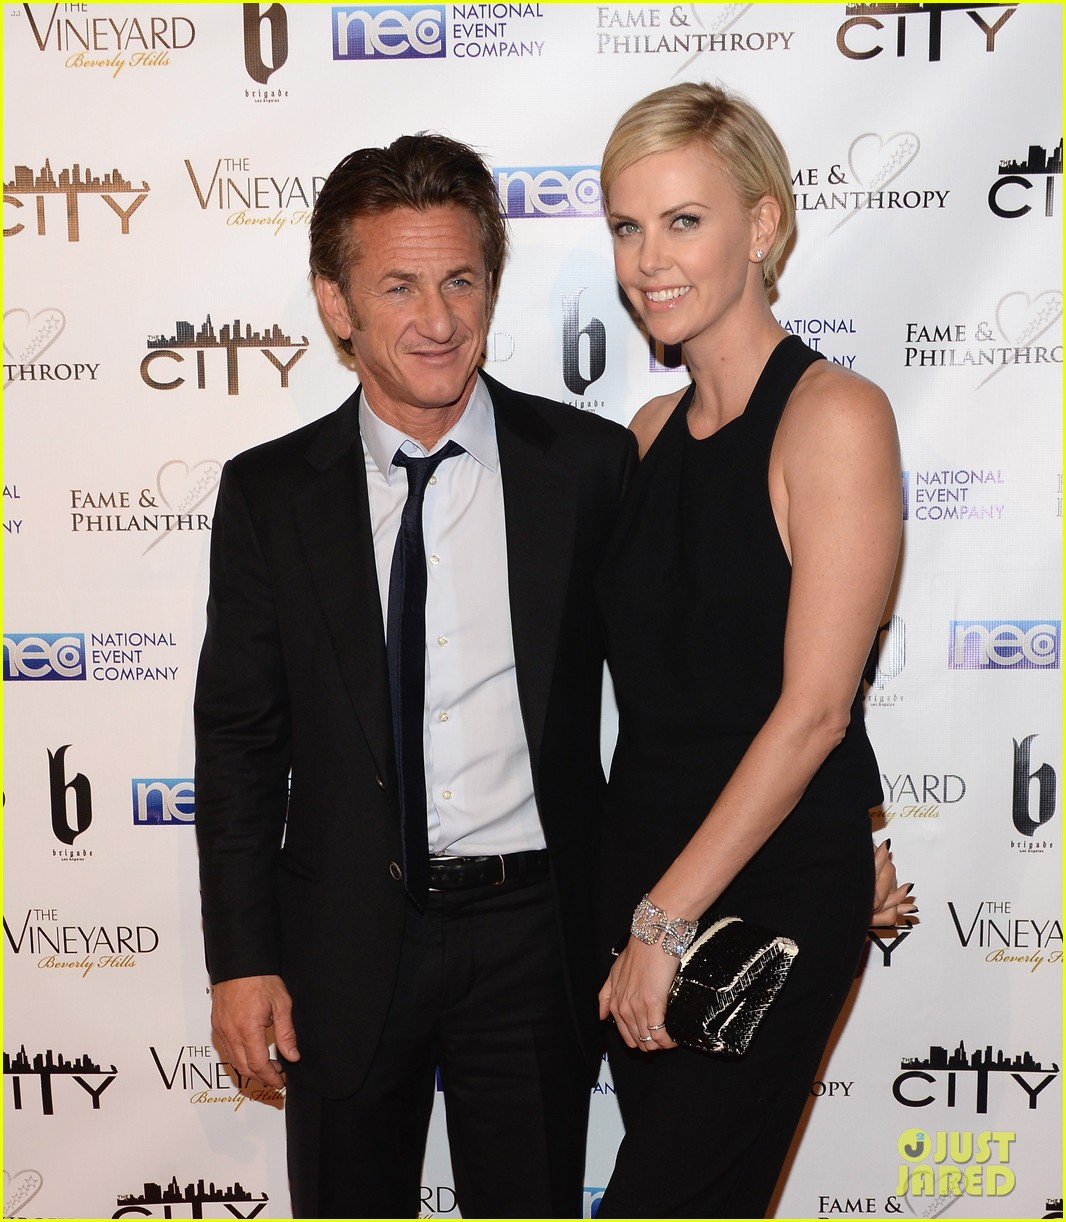 charlize theron sean penn walk first red carpet together at oscars 2014 party 073064646